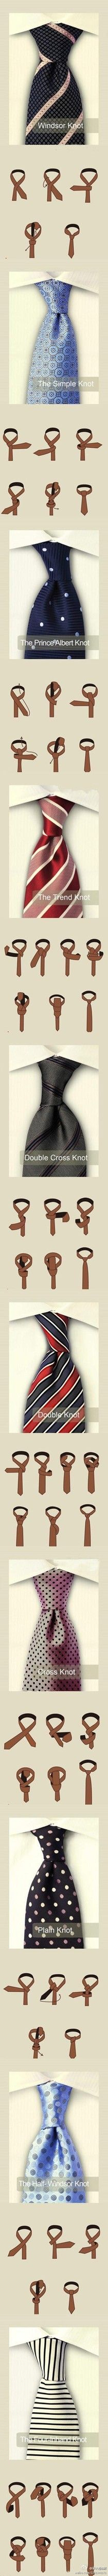 Every girl should know how to tie.